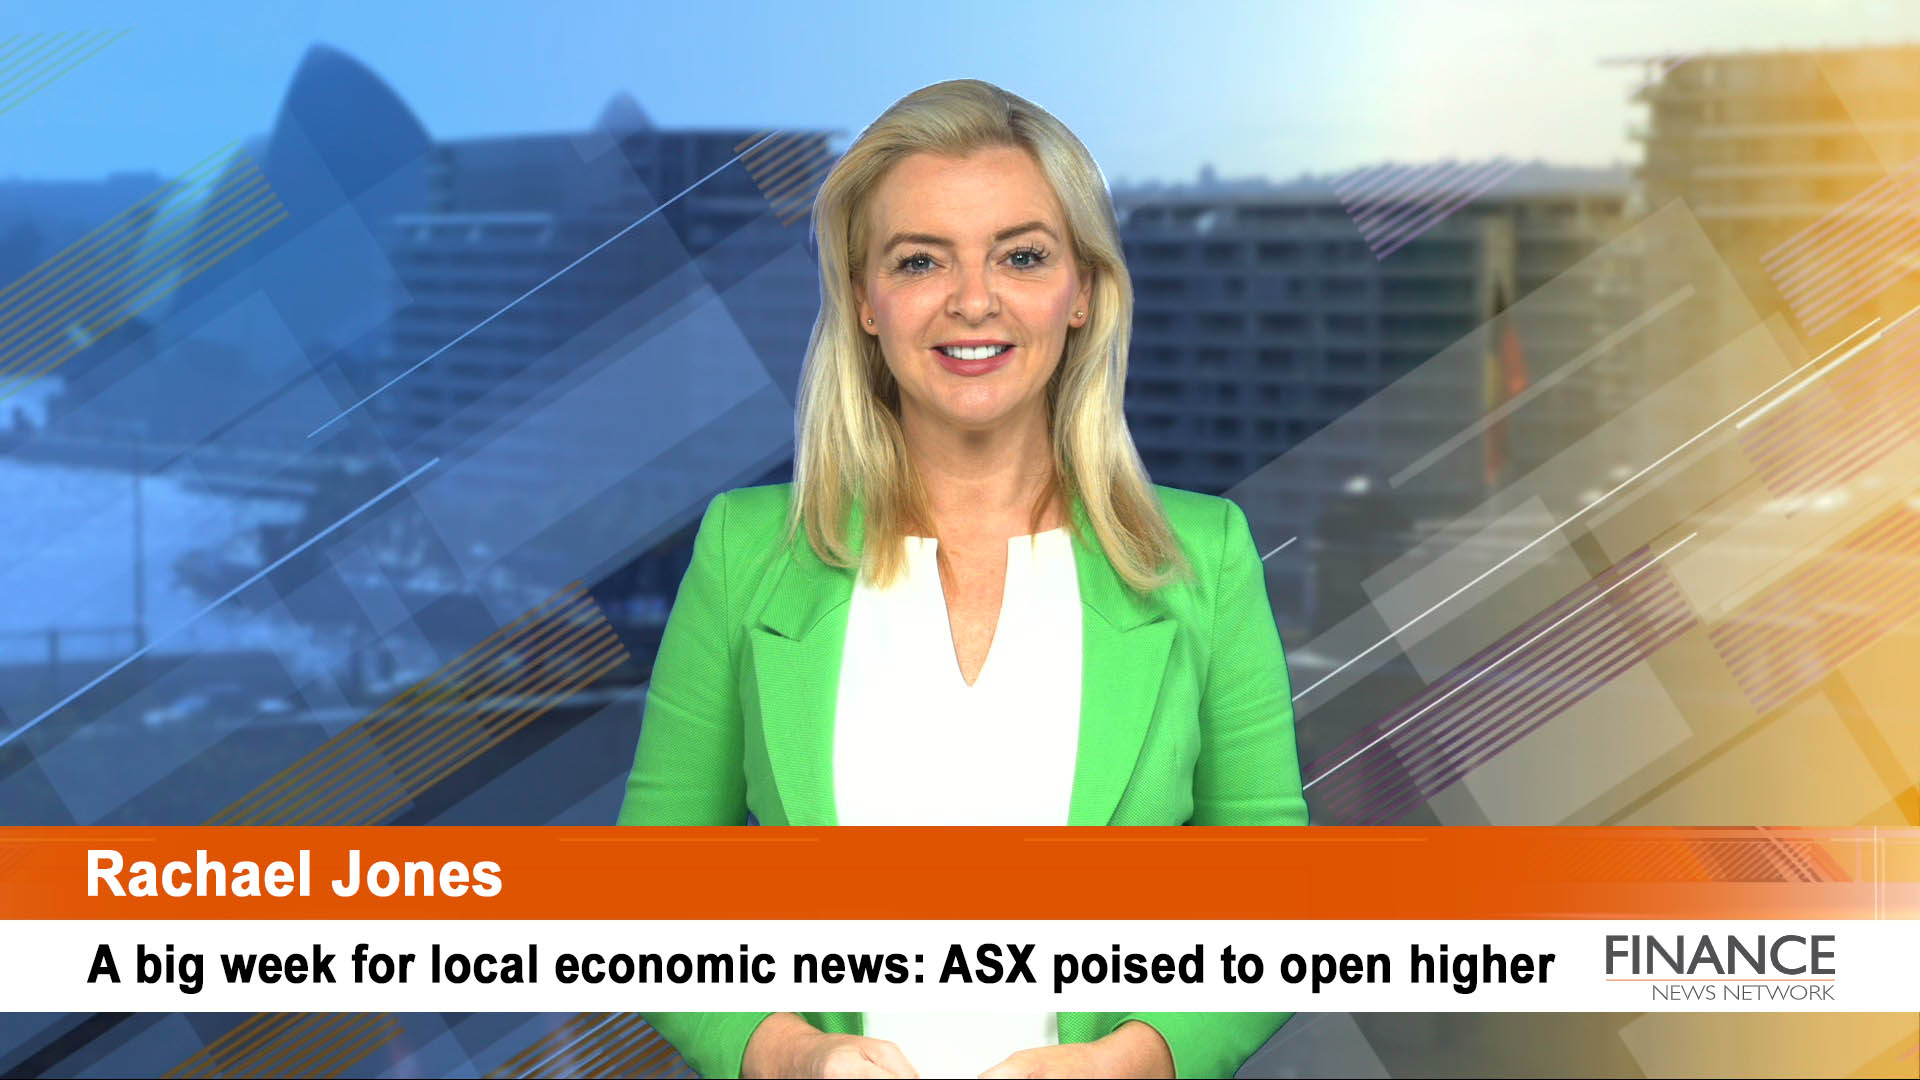 A big week for local economic news: ASX poised to open higher